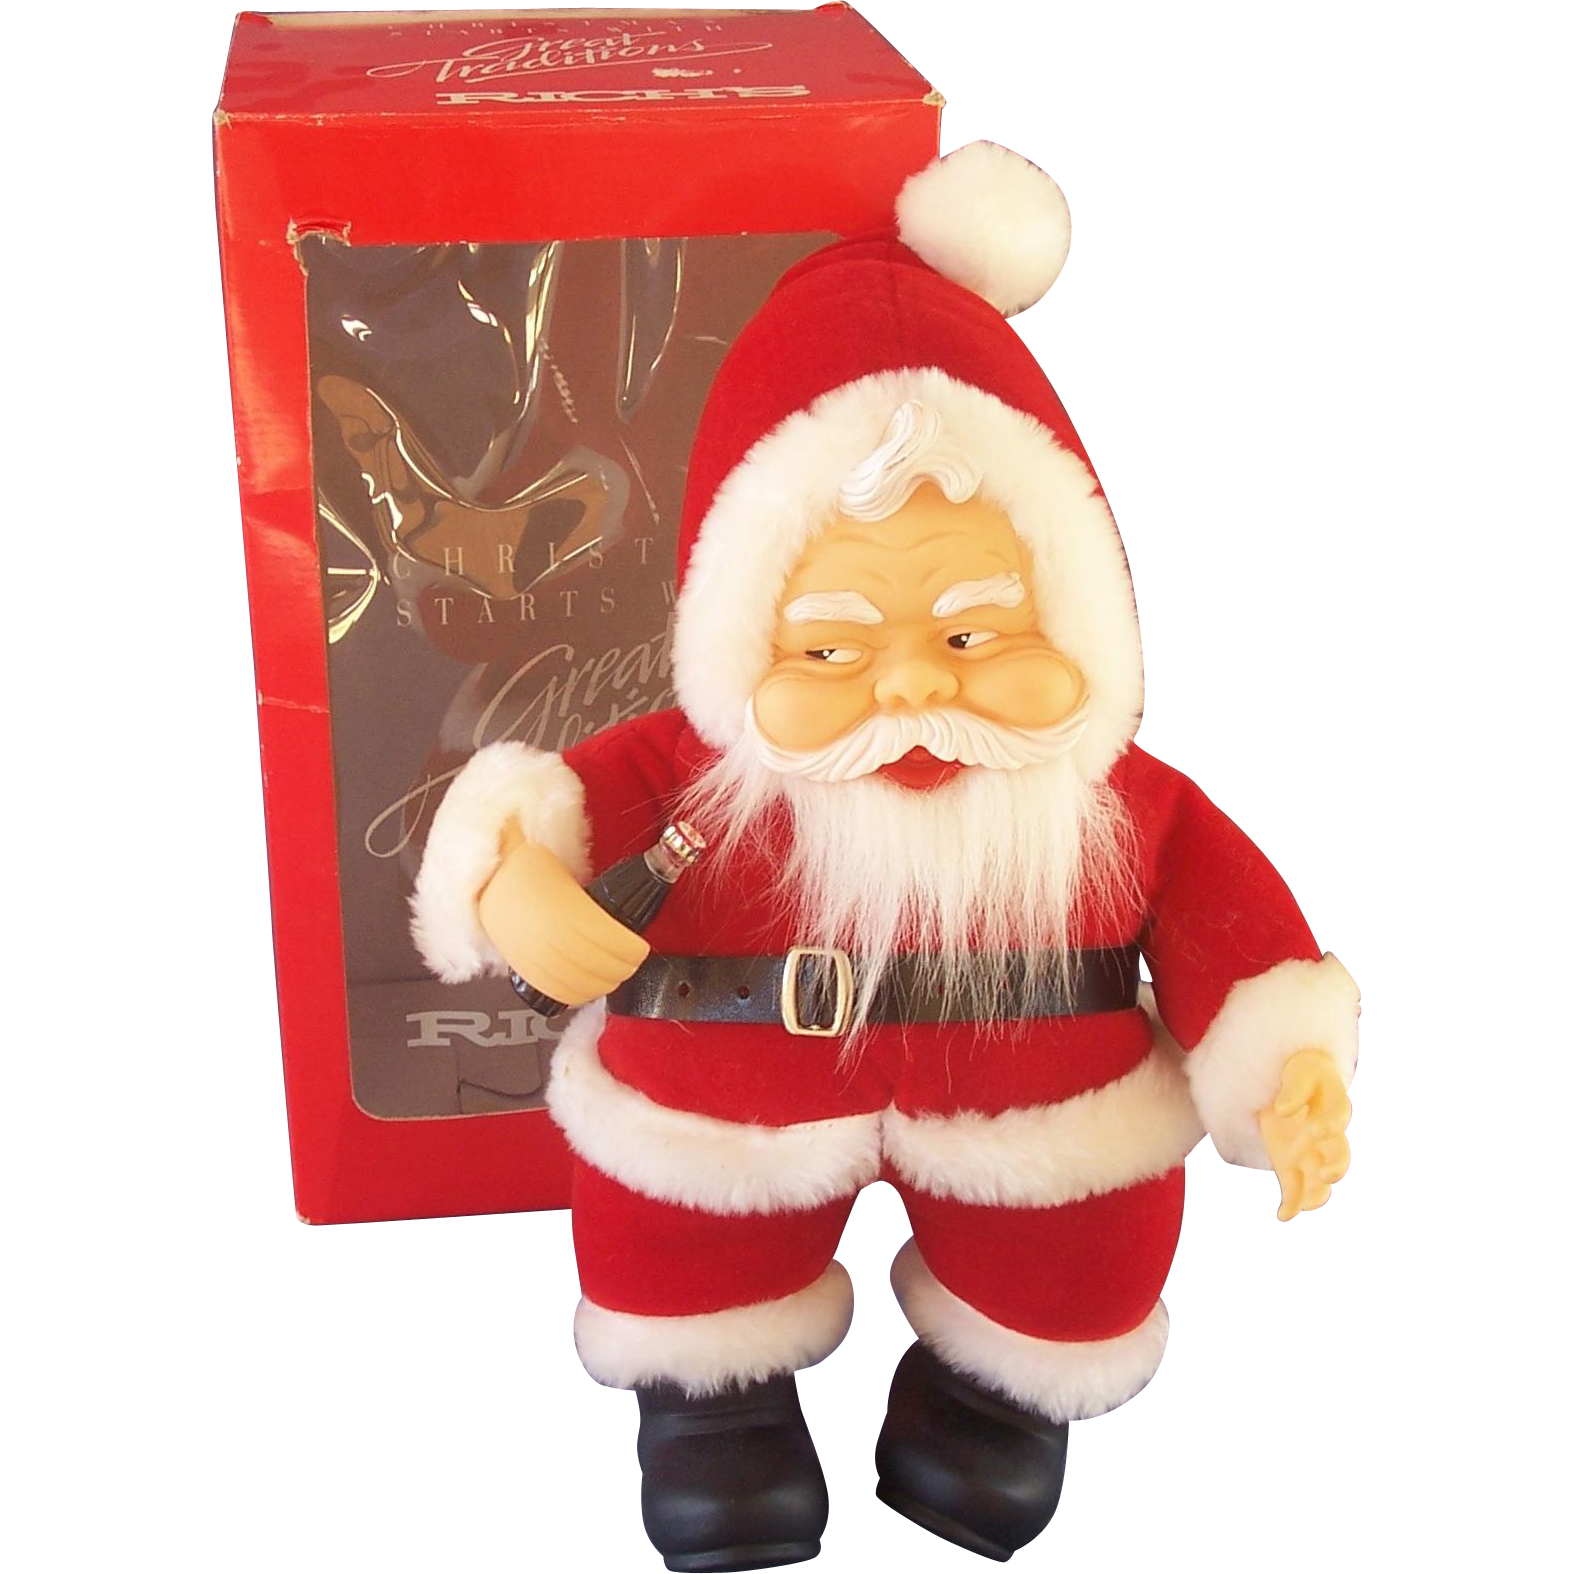 Furniture Stores In Carrollton Tx Coca Cola Plush Santa Doll in Original Box from grannyts on Ruby Lane